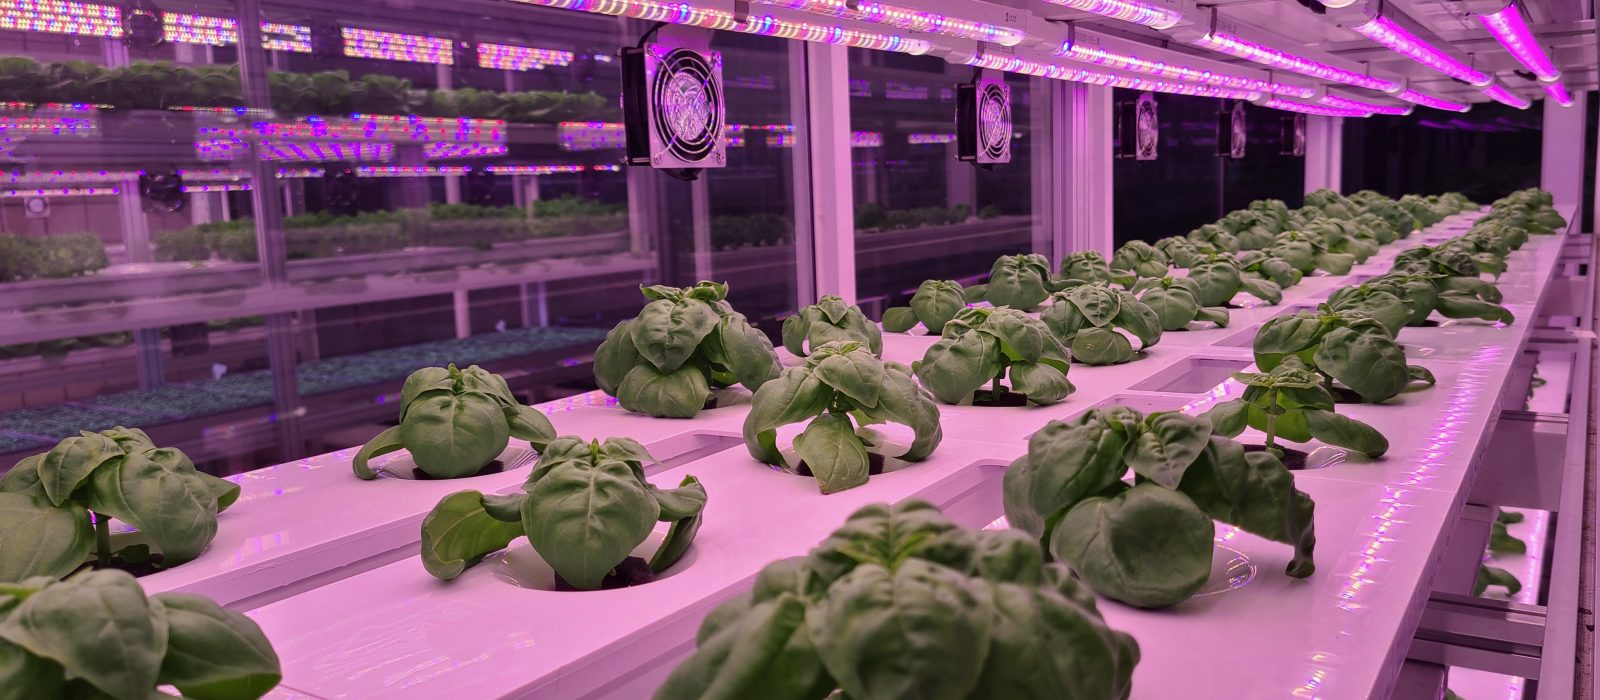 Image of an indoor vertical farm with plants growing under special lighting